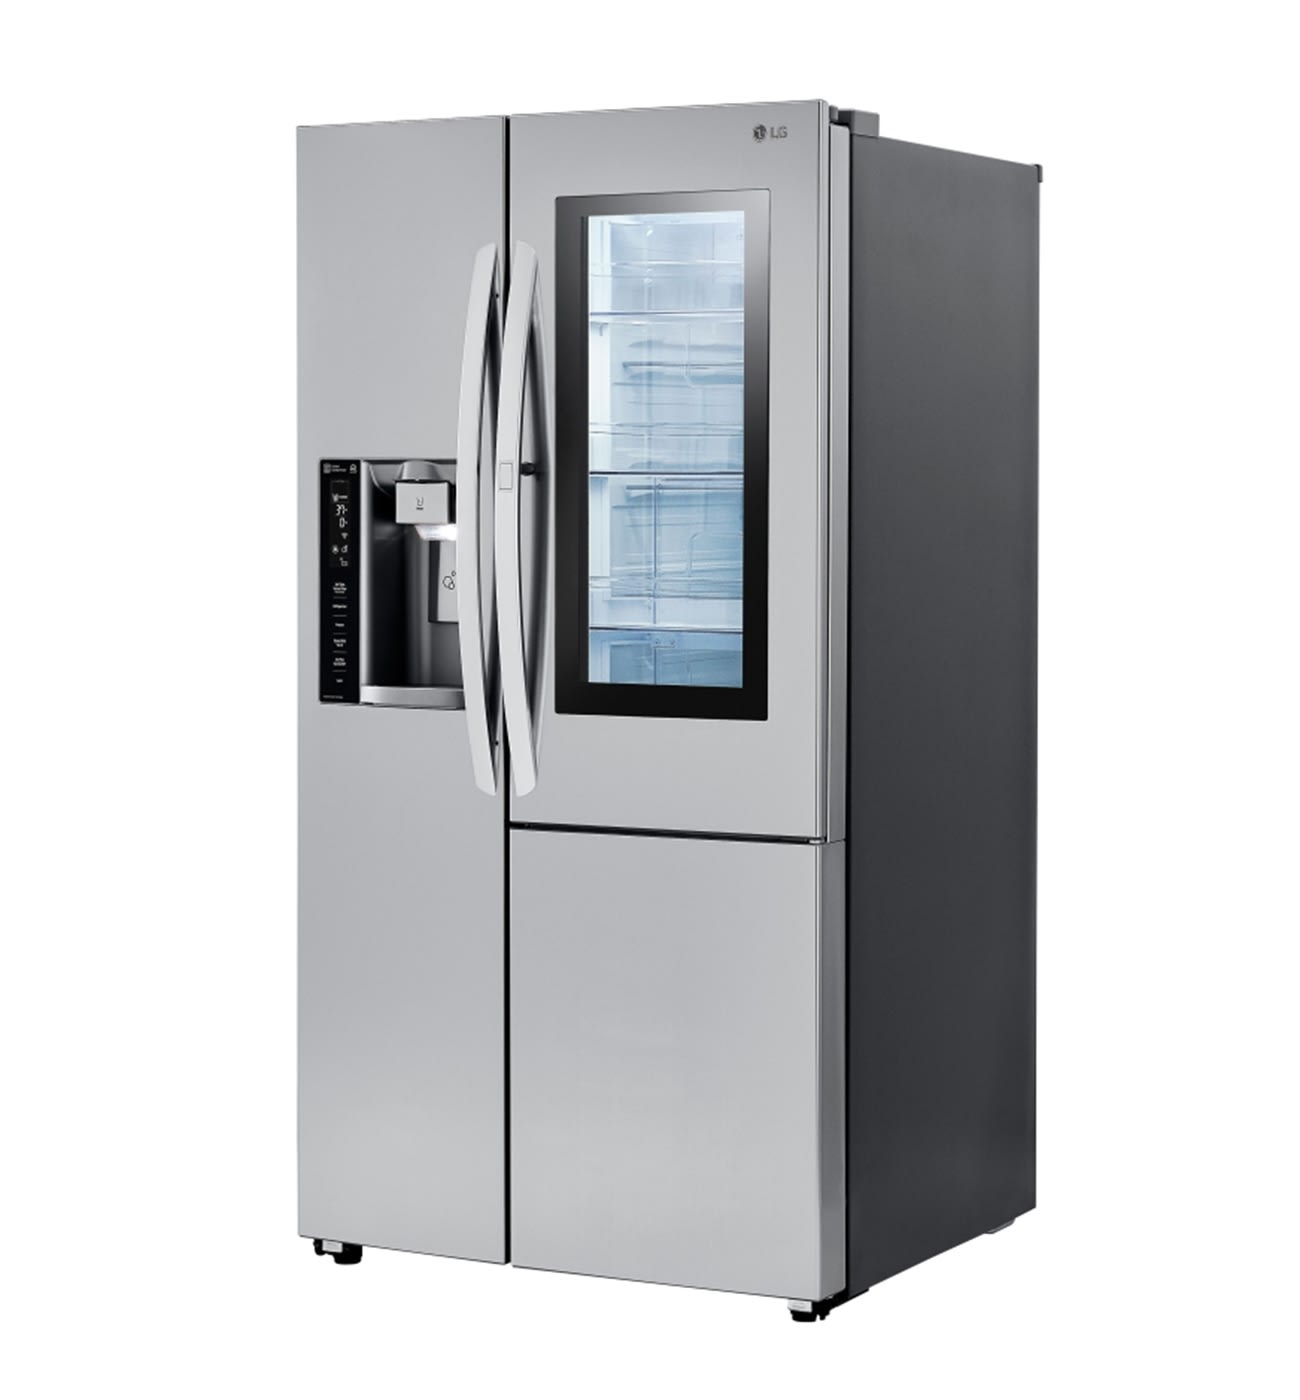 d5f2c0768d5 LSXC22396S by LG - Side-By-Side Refrigerators